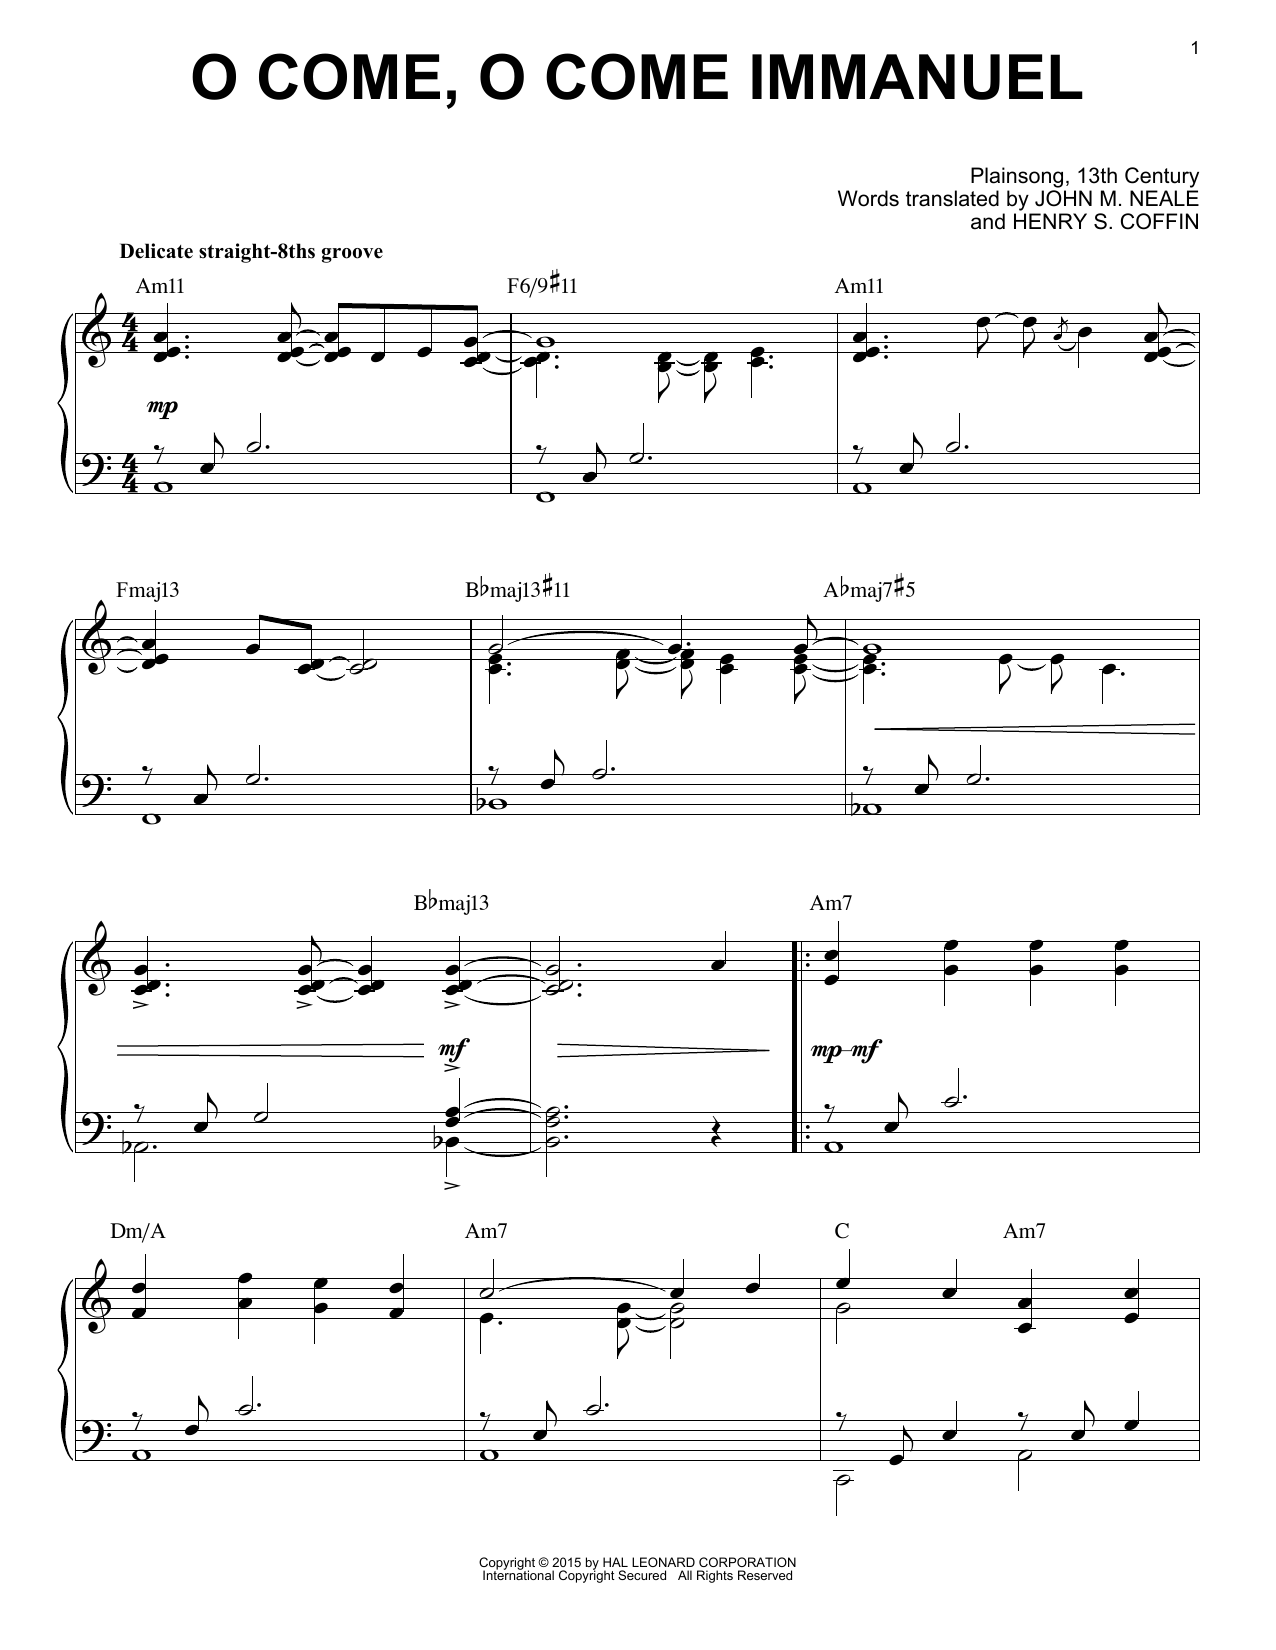 Download Traditional Carol 'O Come, O Come Immanuel' Digital Sheet Music Notes & Chords and start playing in minutes